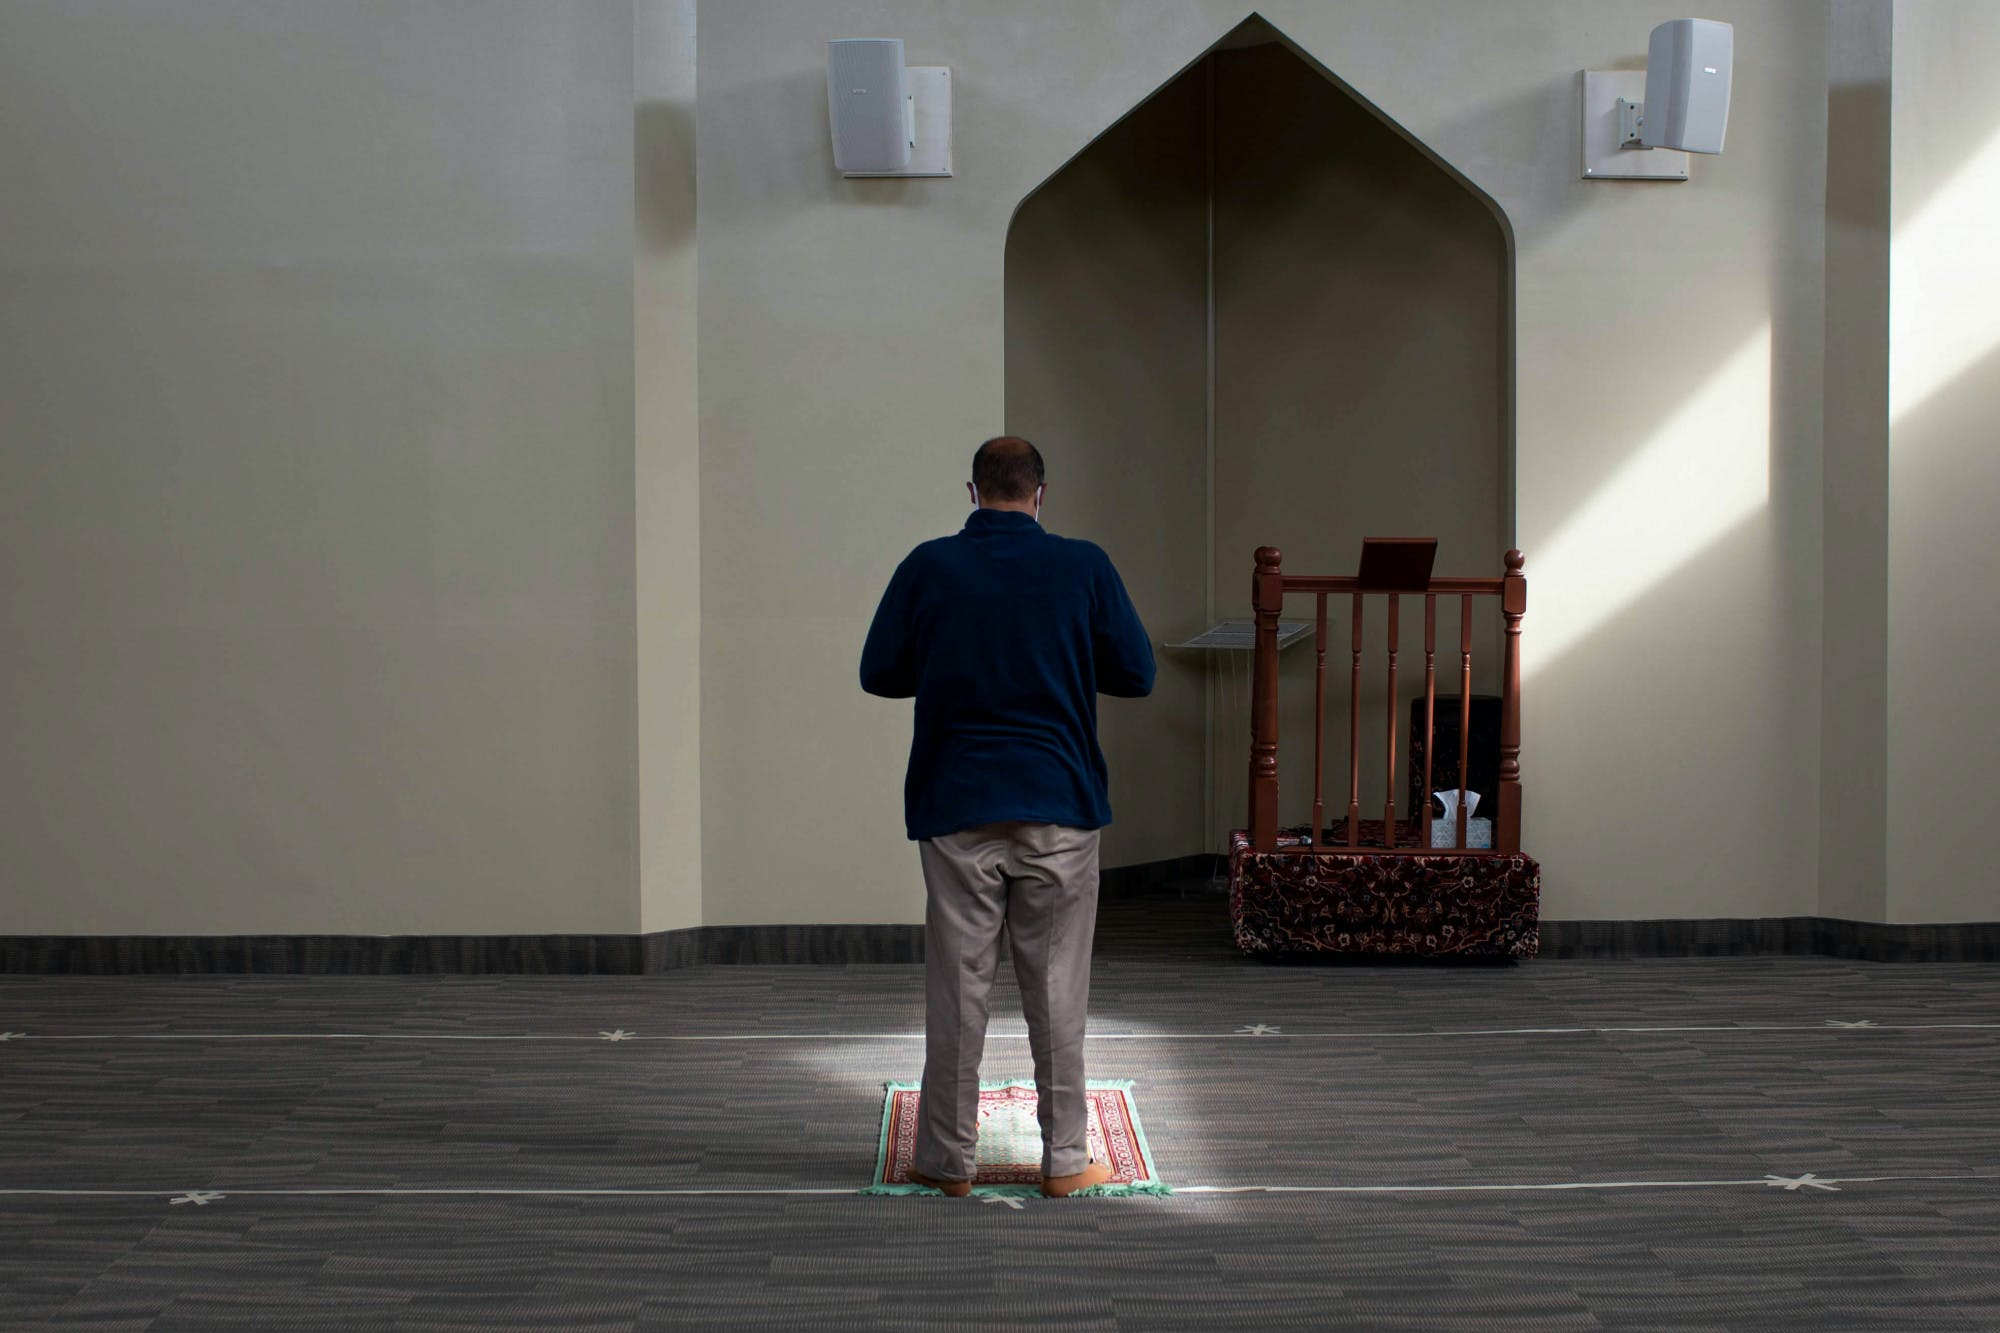 A man wearing a blue shirt, slacks and no shoes stands on a prayer rug. There are pieces of tape on the ground about six feet apart.